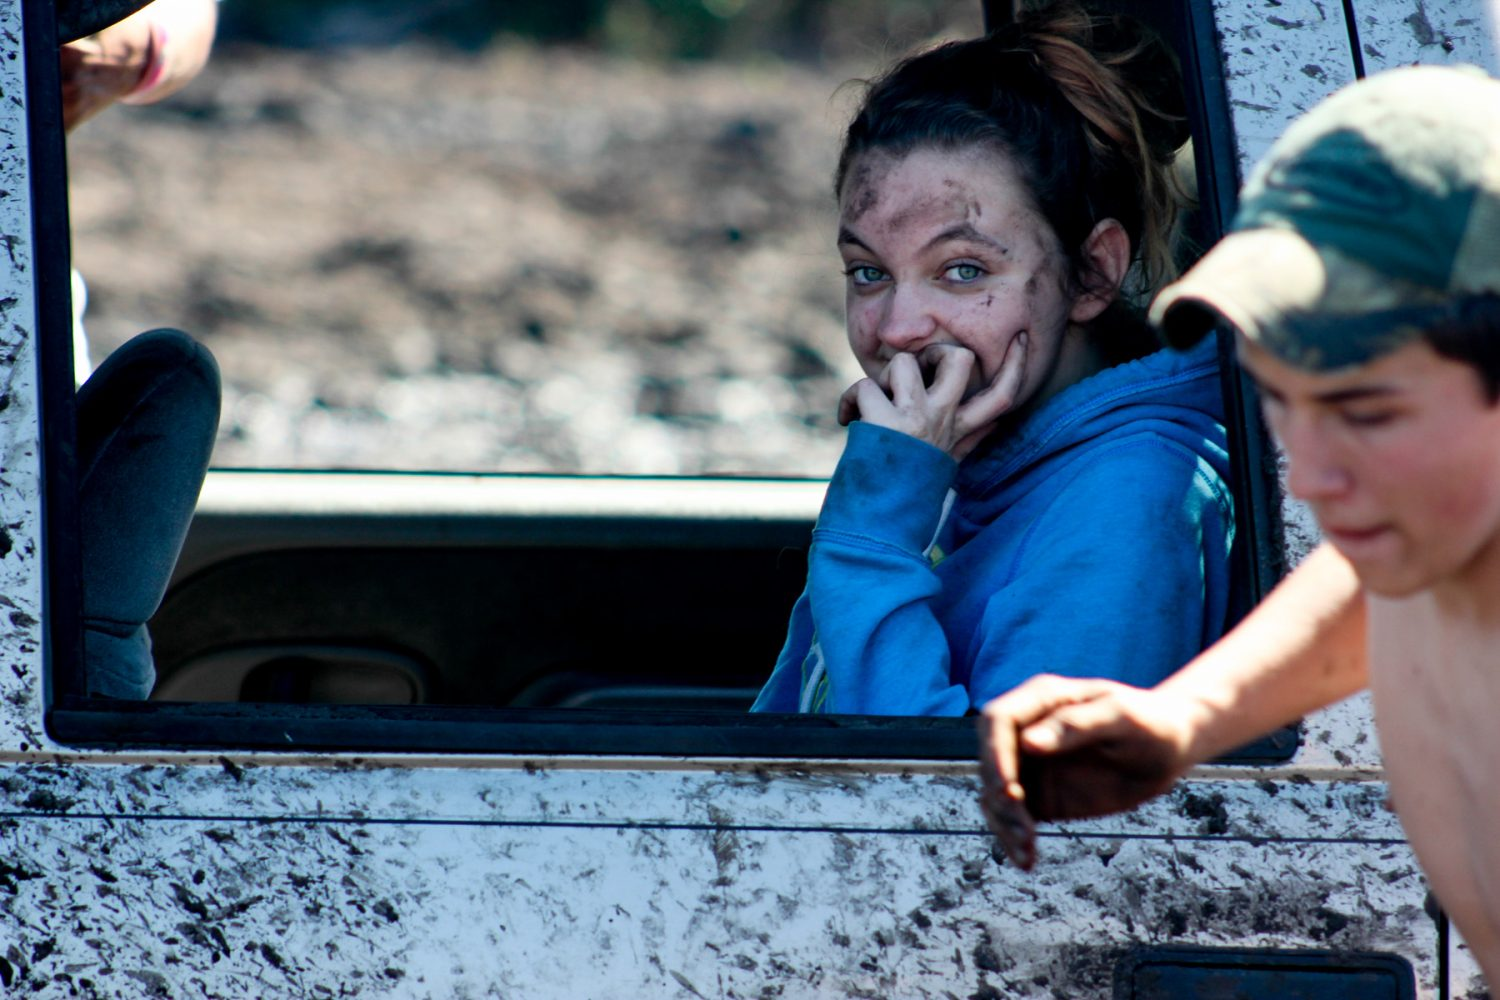 Rachel Caldwell, of Belleview, Fla., watches as her friends try to retrieve their truck from the mud on the Hog Waller property on Sunday afternoon, March 2, 2014.